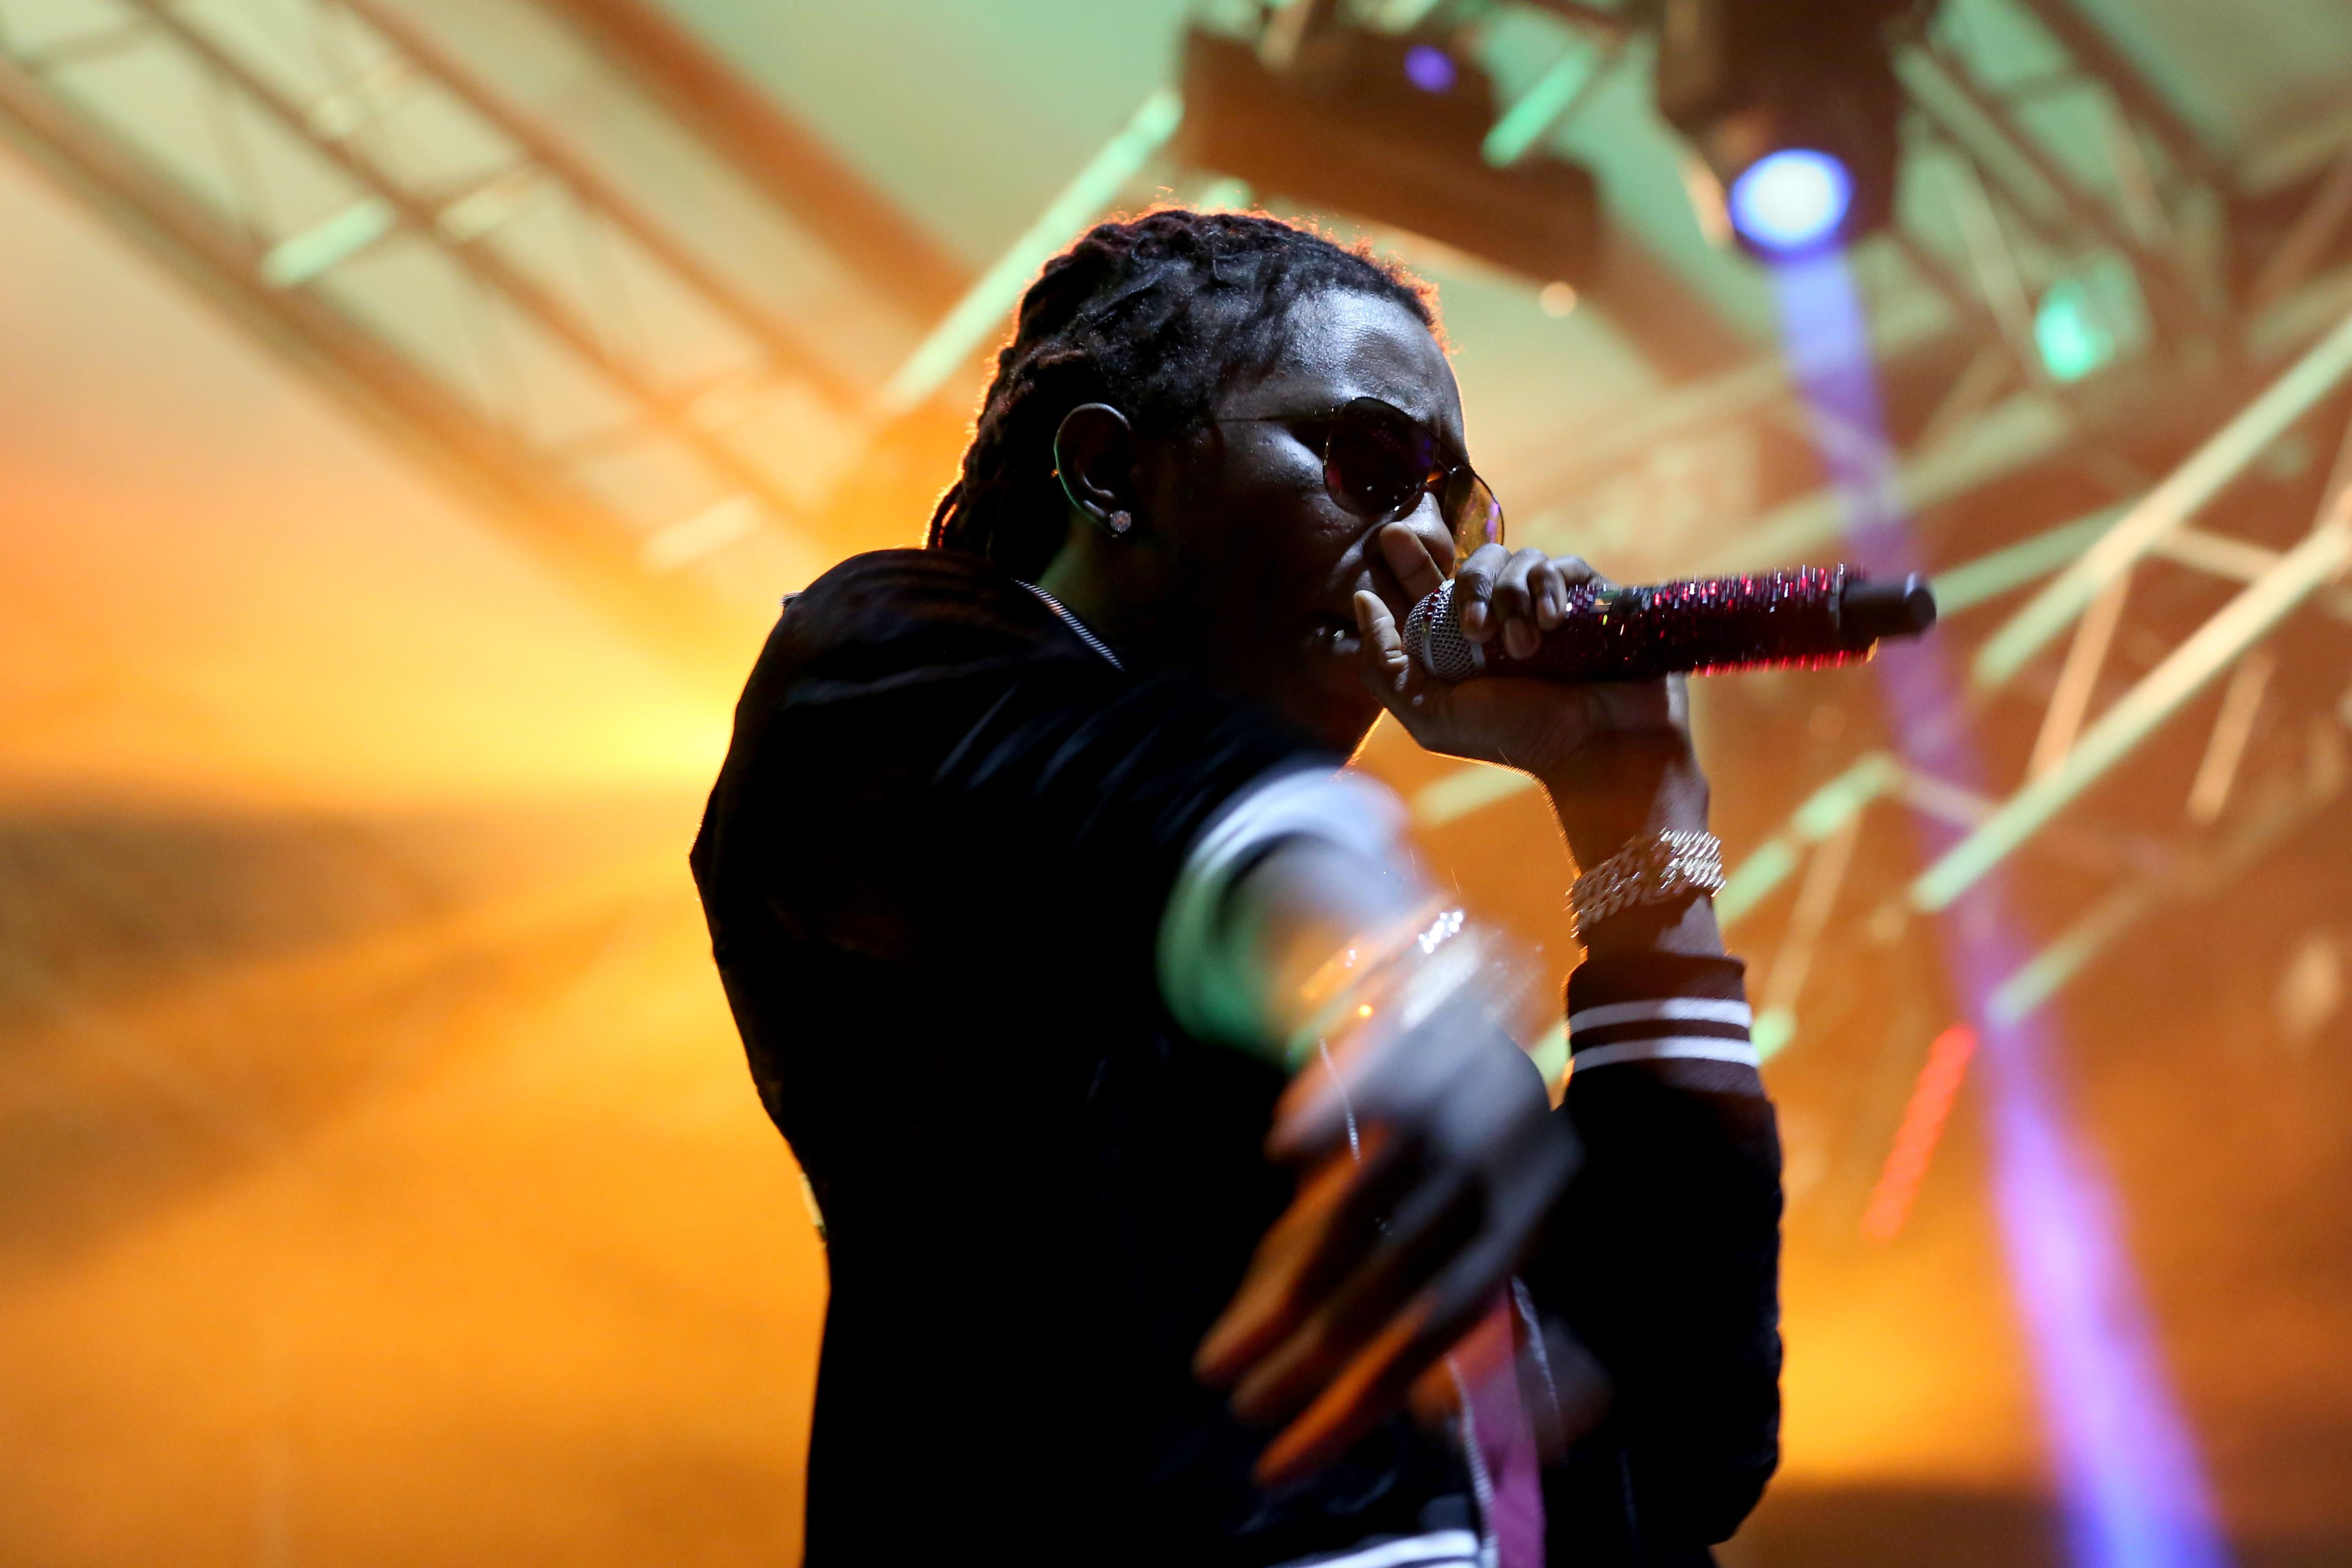 Although Young Thug was over an hour late for his set, the festival-goers that remained were deeply excited to catch his headlining performance.  (Amanda Andrade-Rhoades/DC Refined)